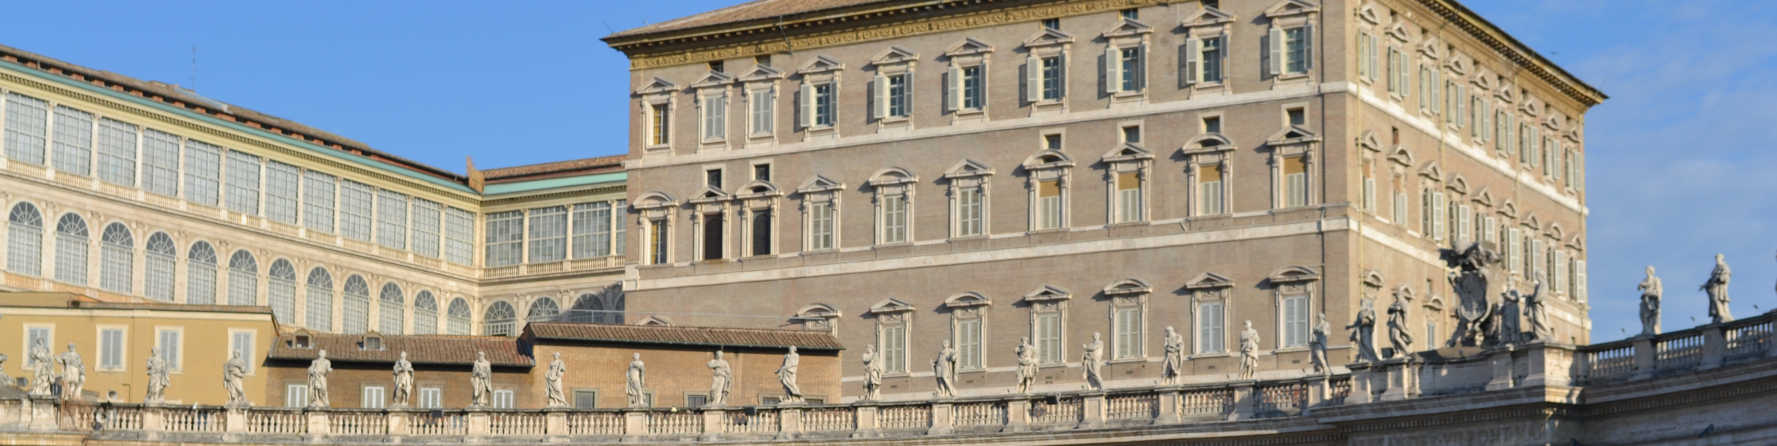 Who lives in the Vatican Palace?